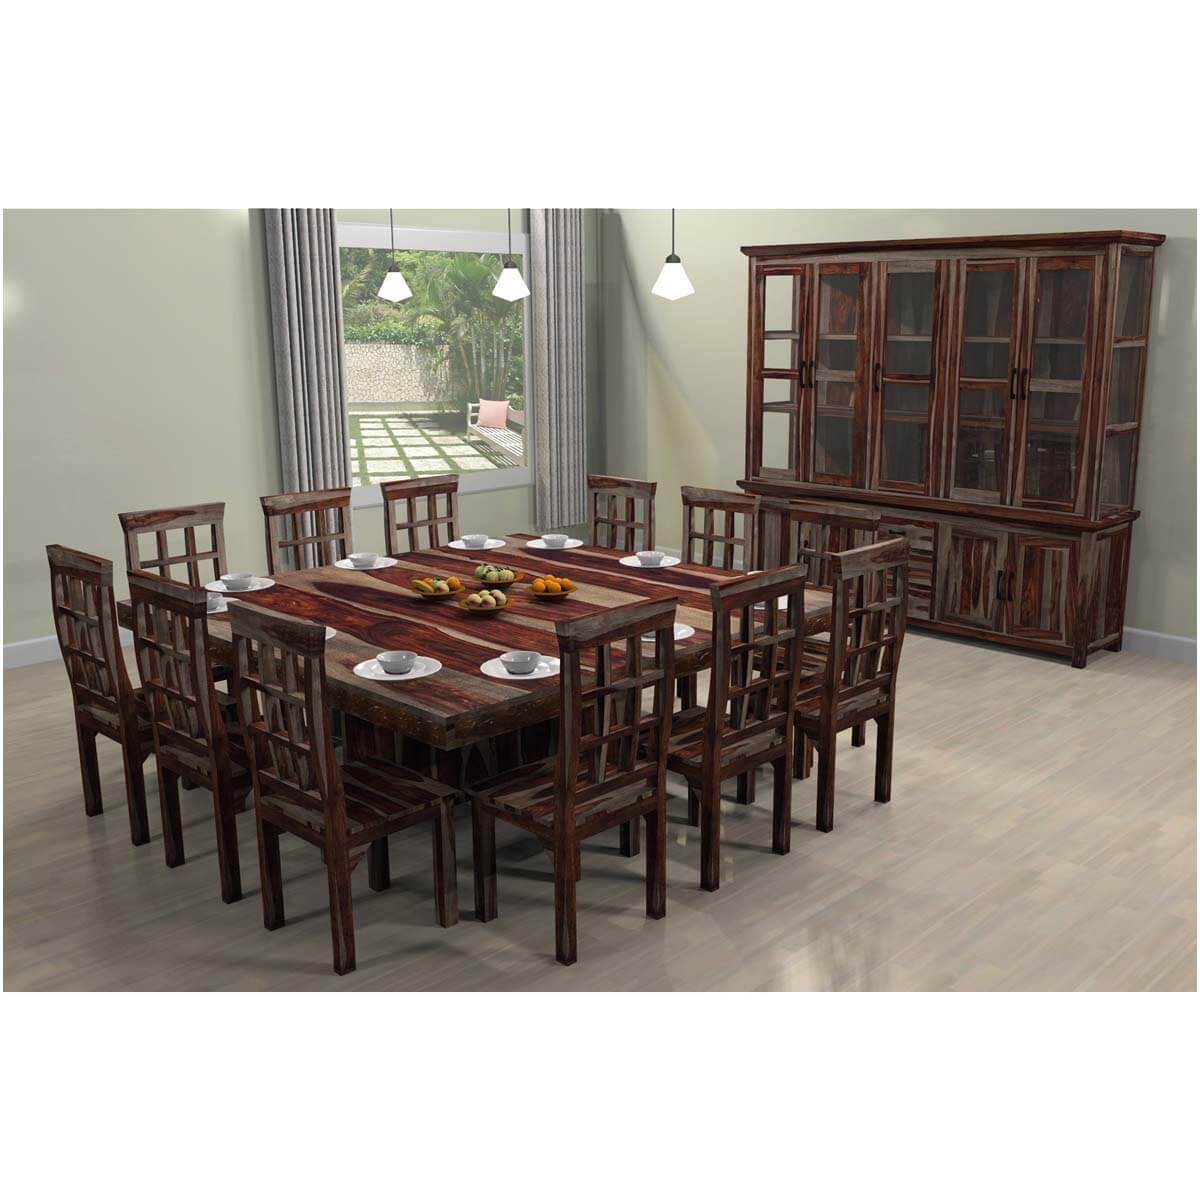 Dallas Ranch Square Pedestal Large Dining Table Chair